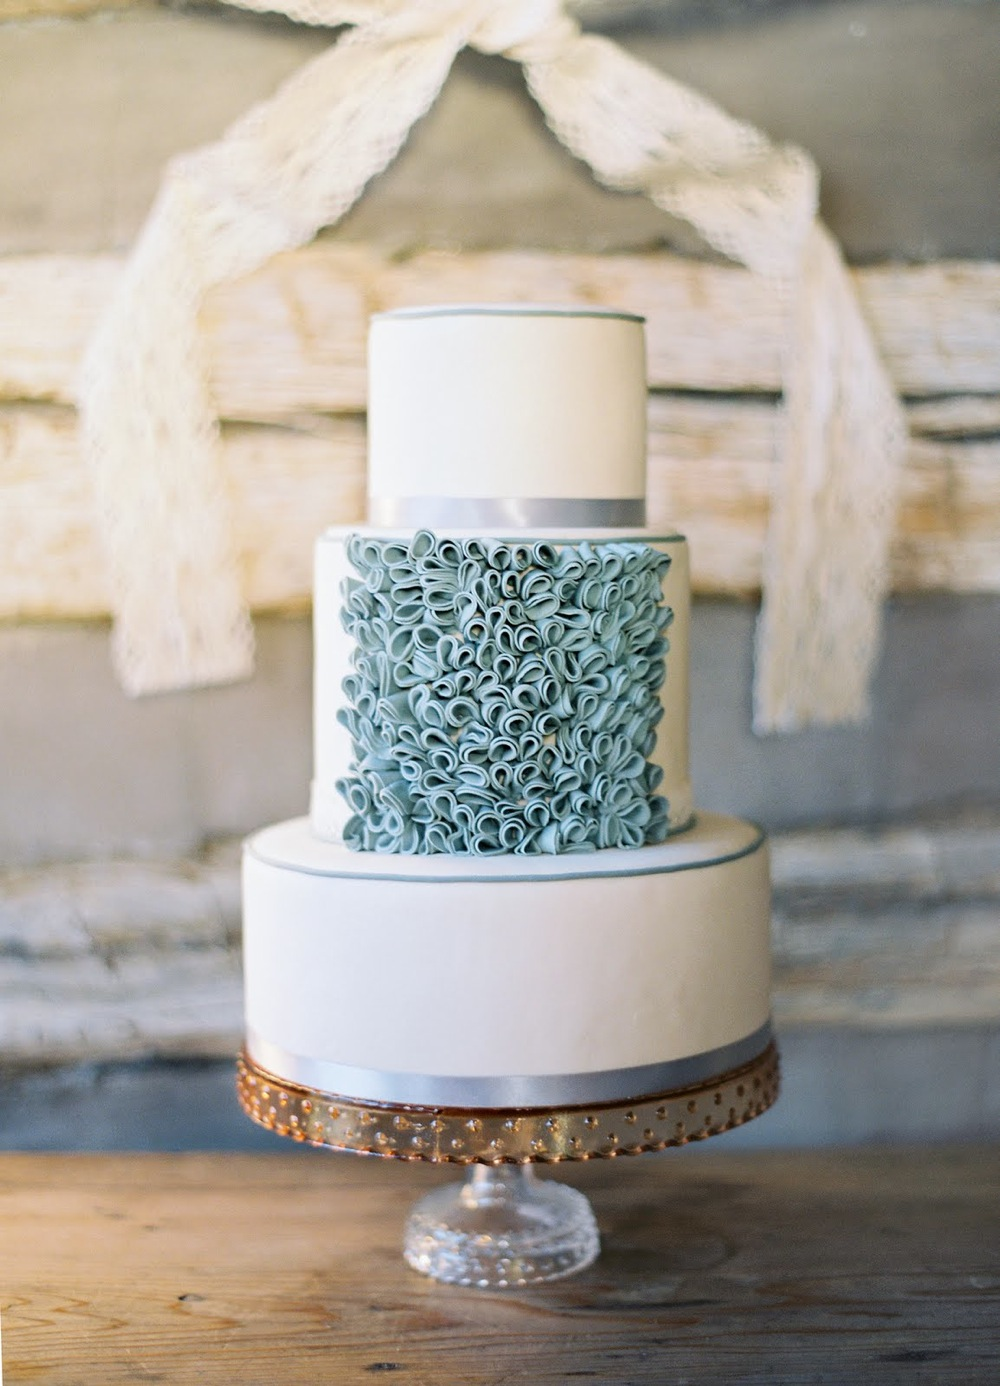 Whimsical-wedding-cakes-textured-something-blue.original